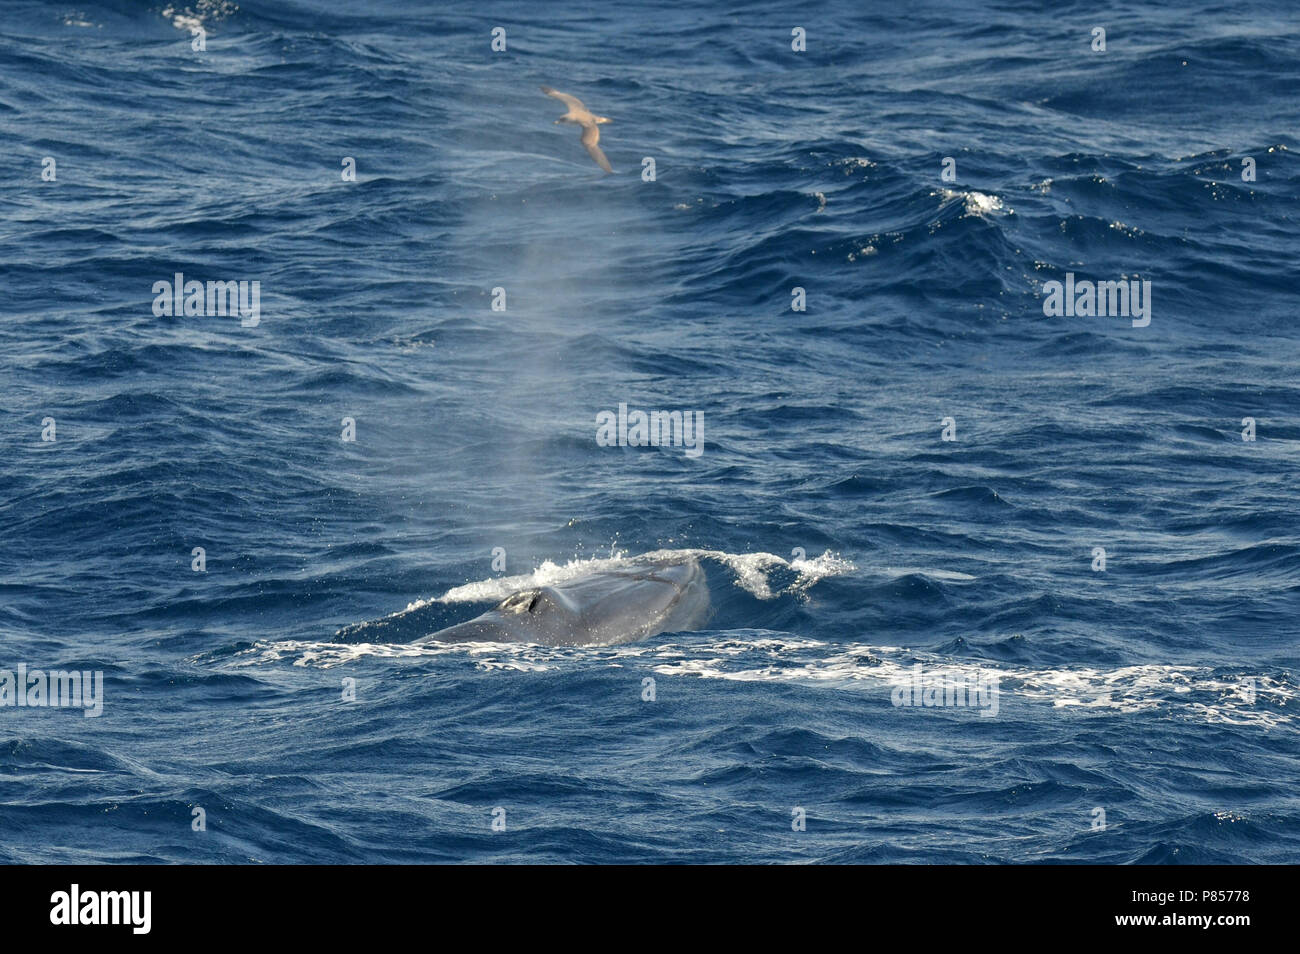 Bryde's Whale - Stock Image